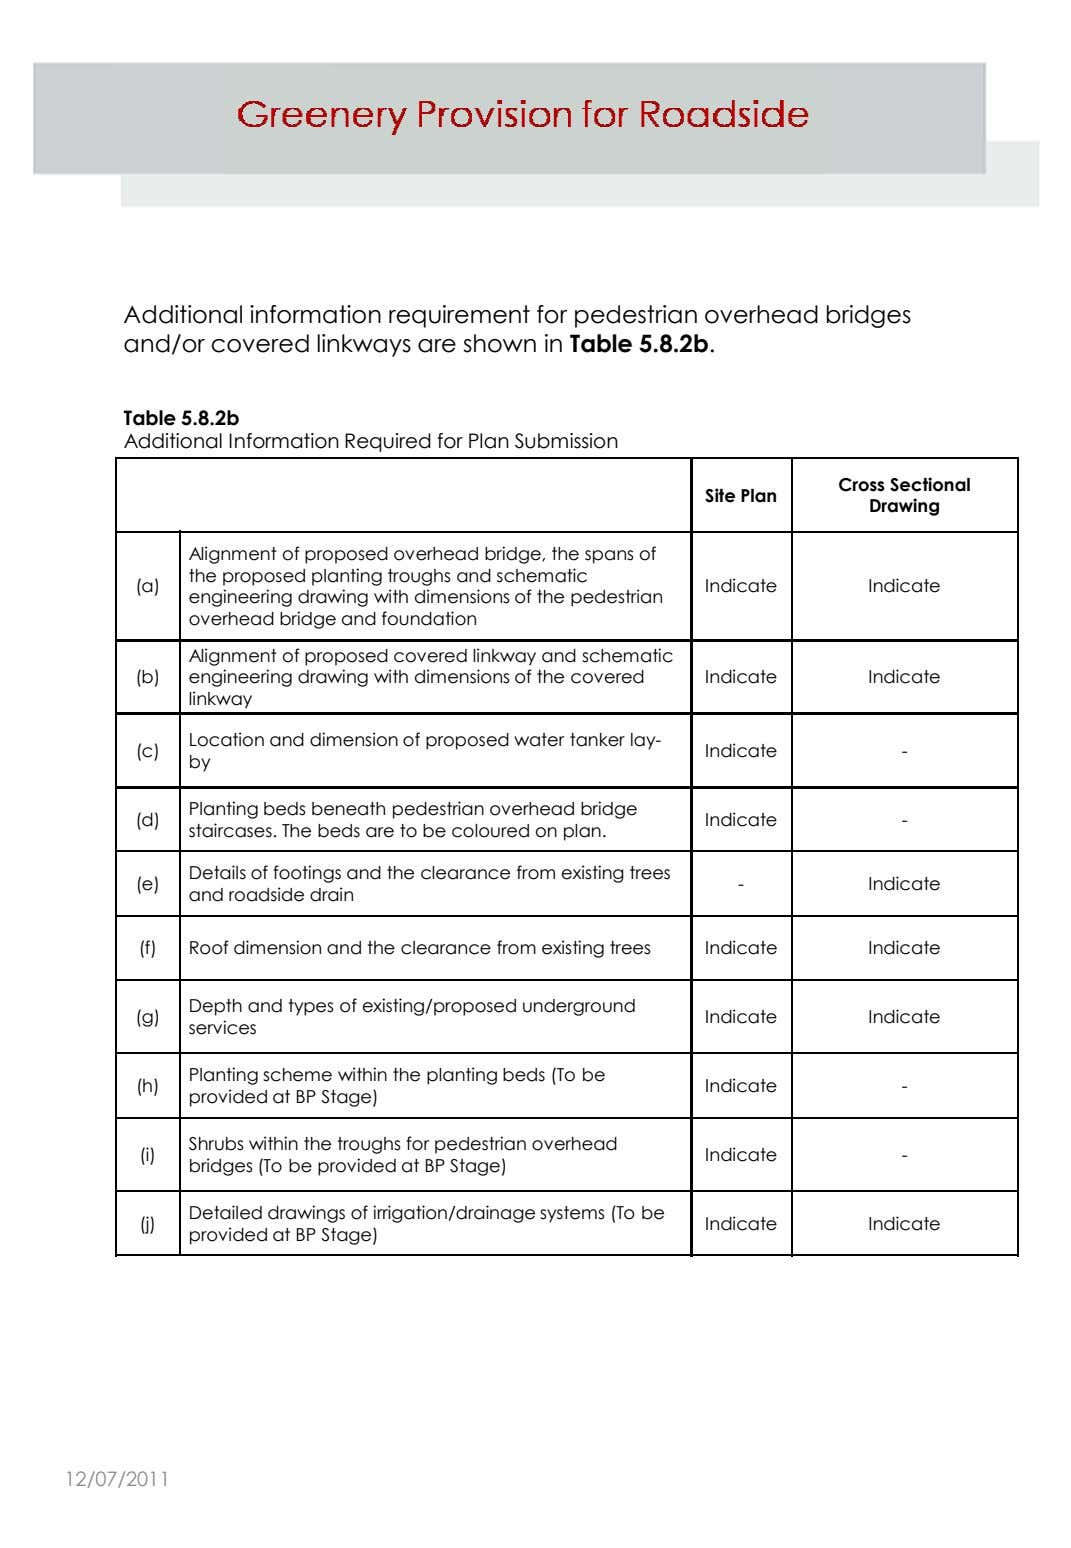 Additional information requirement for pedestrian overhead bridges and/or covered linkways are shown in Table 5.8.2b.